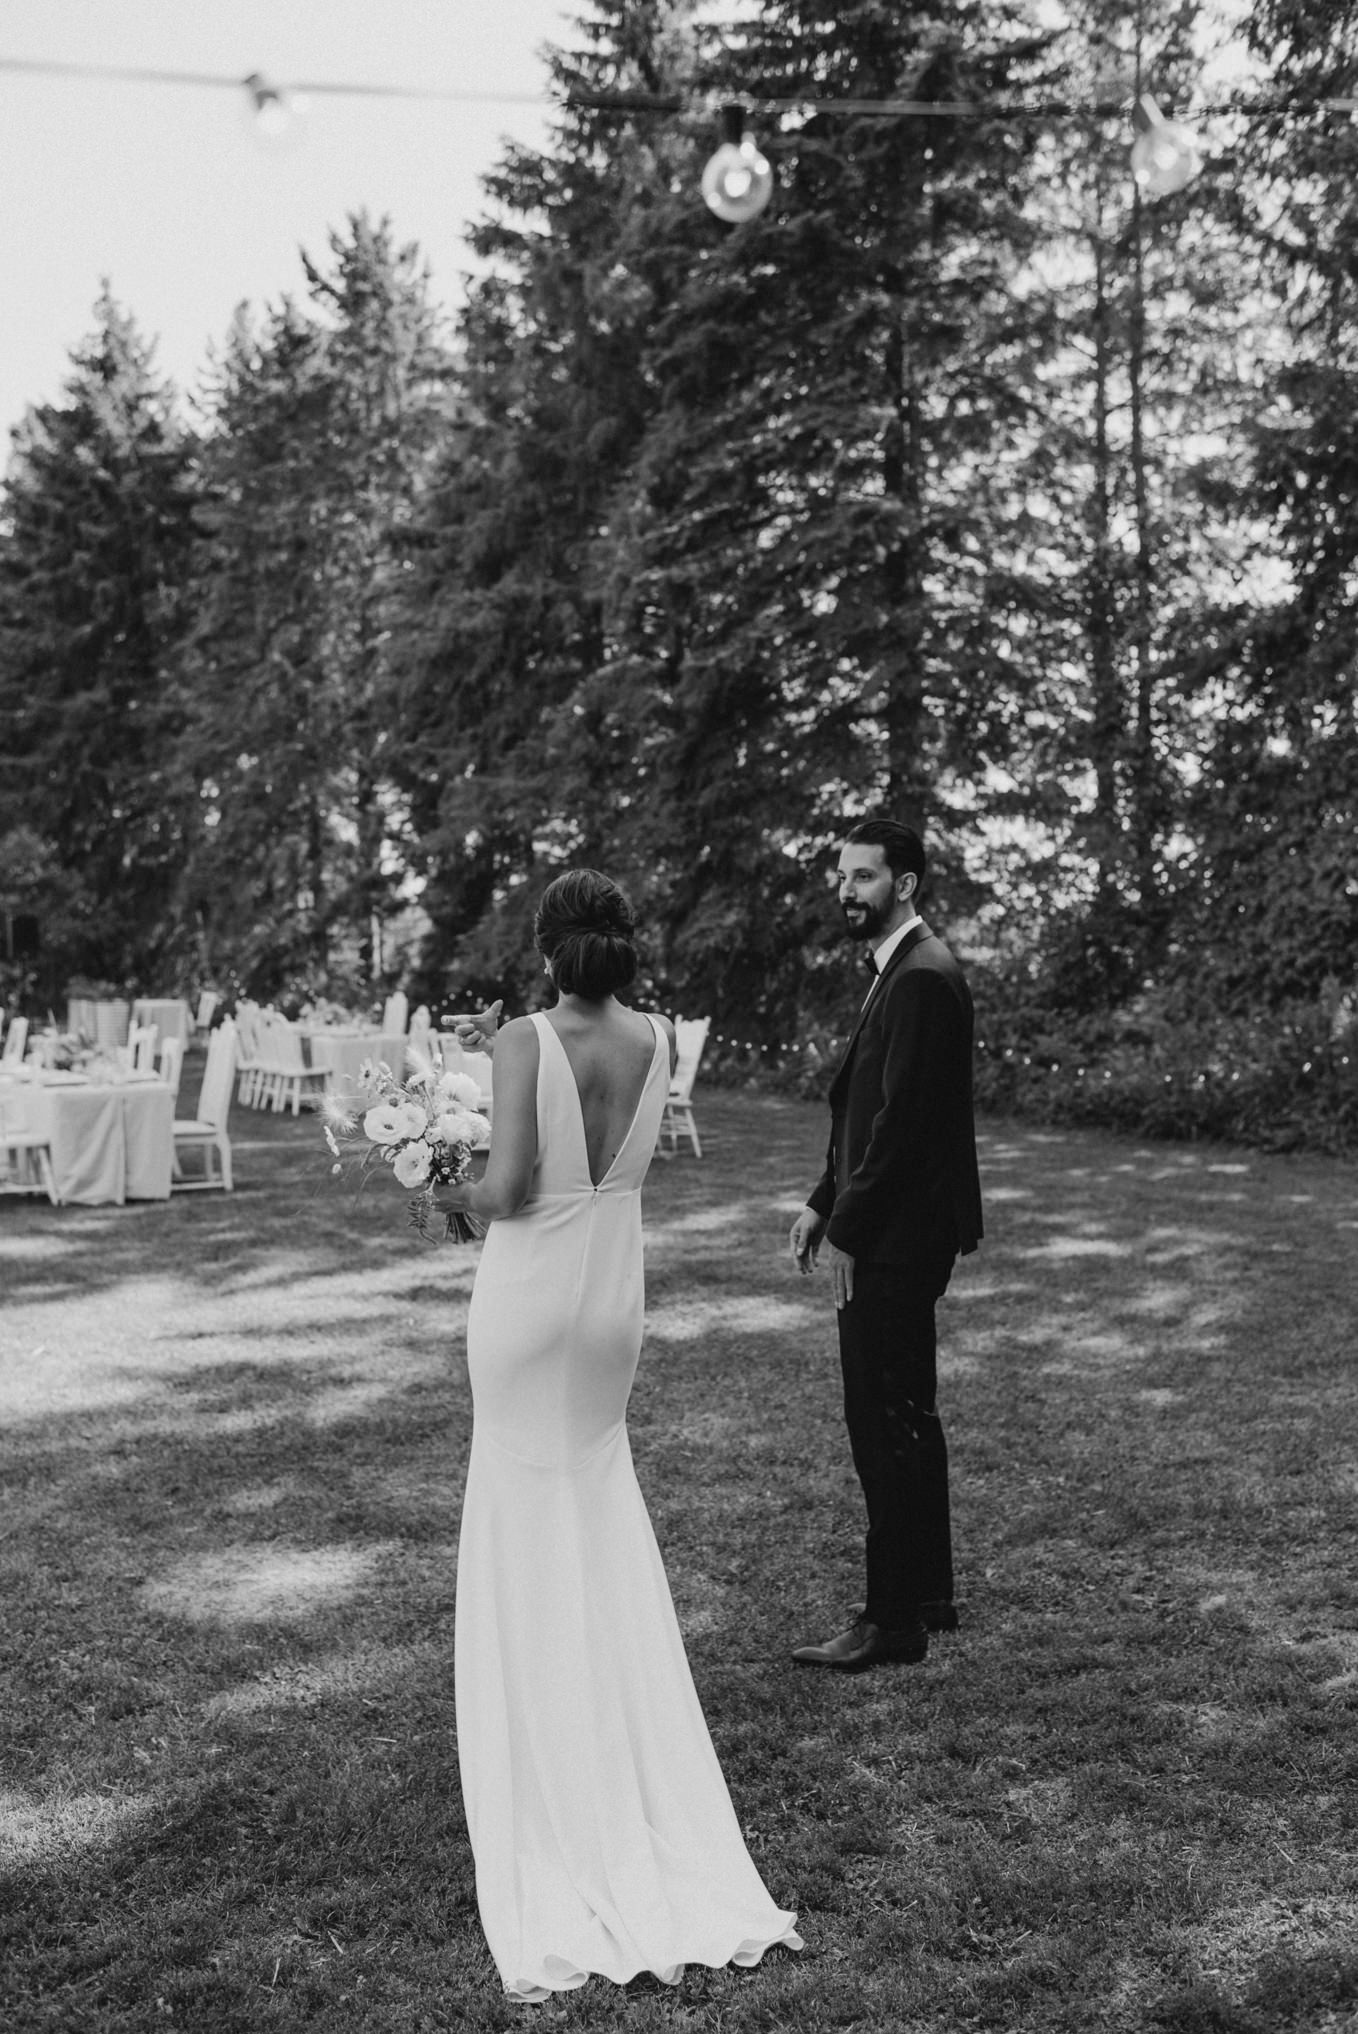 black and white photos of bride and groom on grass beside tables for outdoor wedding reception